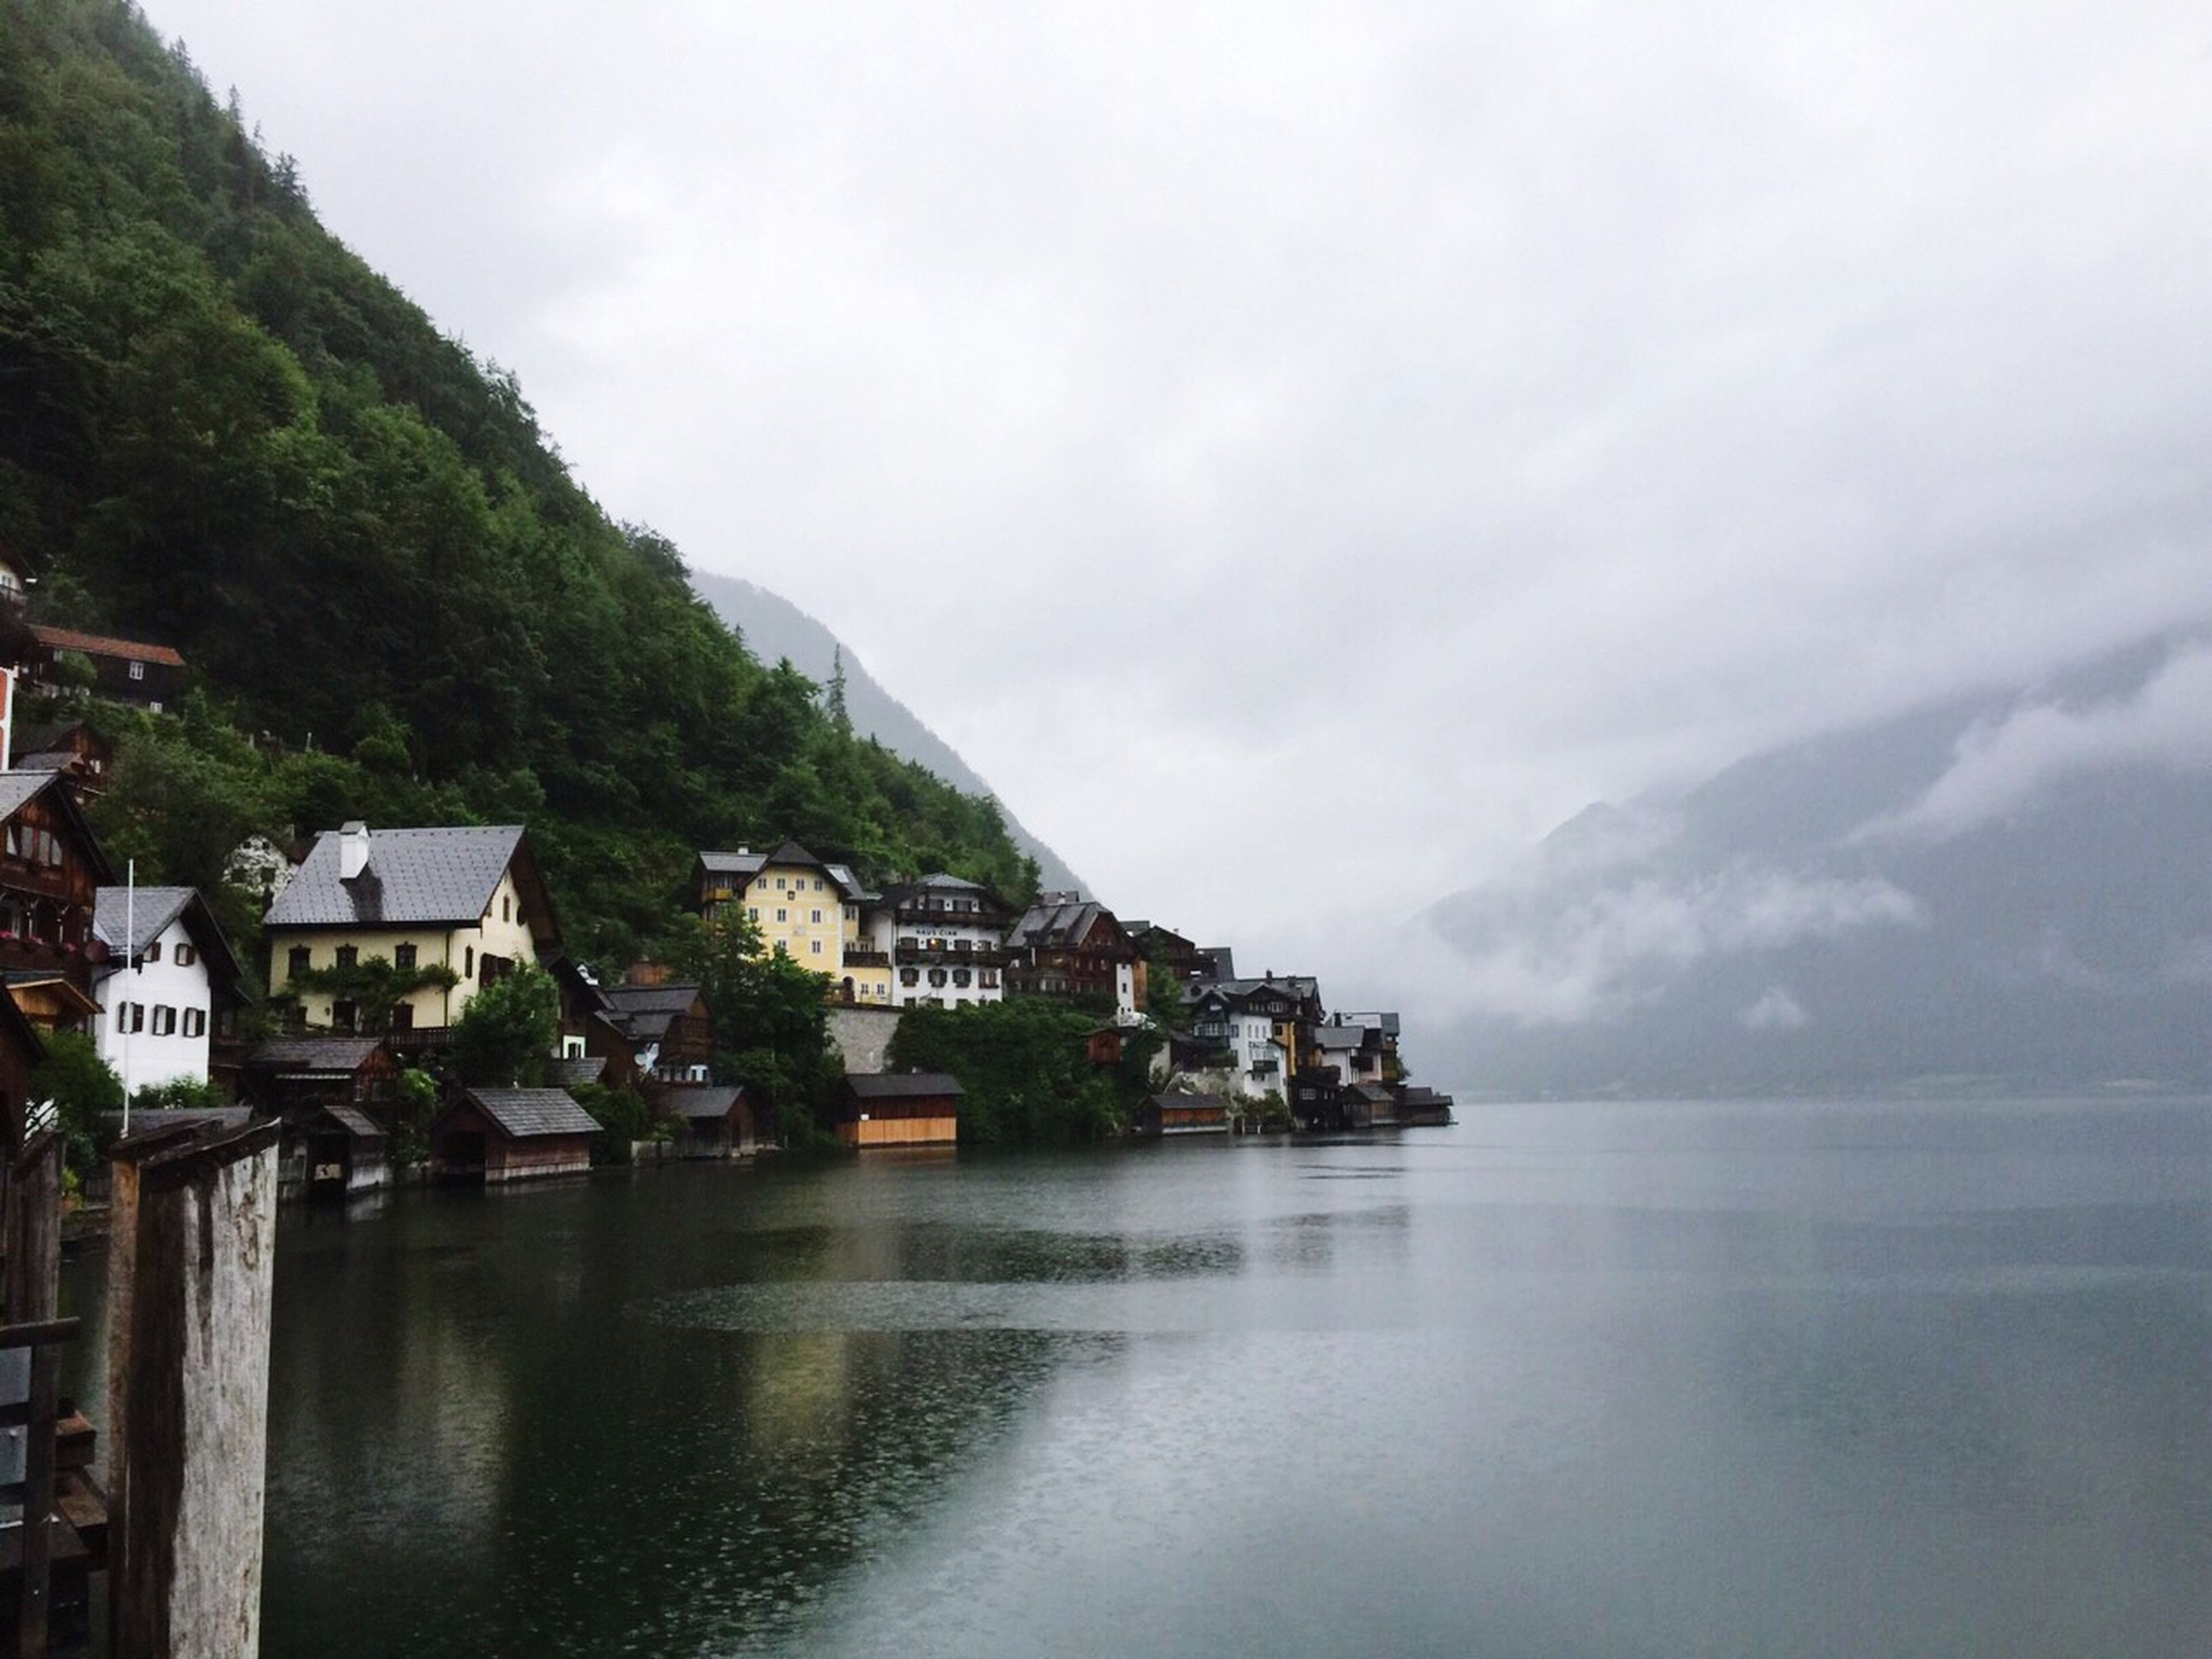 building exterior, architecture, built structure, water, mountain, sky, house, waterfront, residential structure, town, sea, residential building, residential district, tree, townscape, nature, scenics, cloud - sky, day, tranquil scene